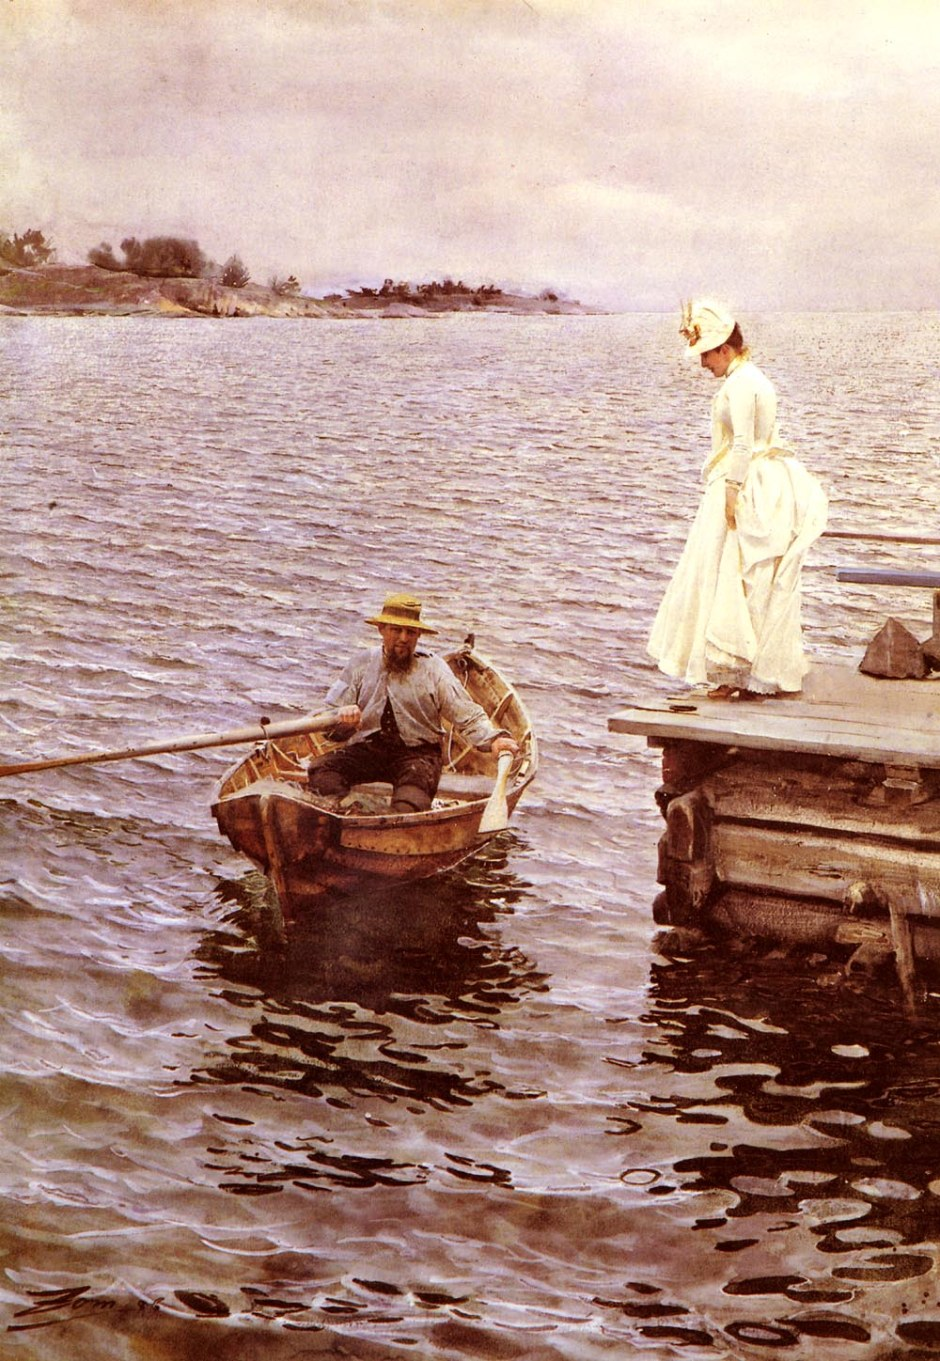 Anders Zorn, Summer Vacation (1886), watercolour, 76 x 56 cm, Private collection. WikiArt.